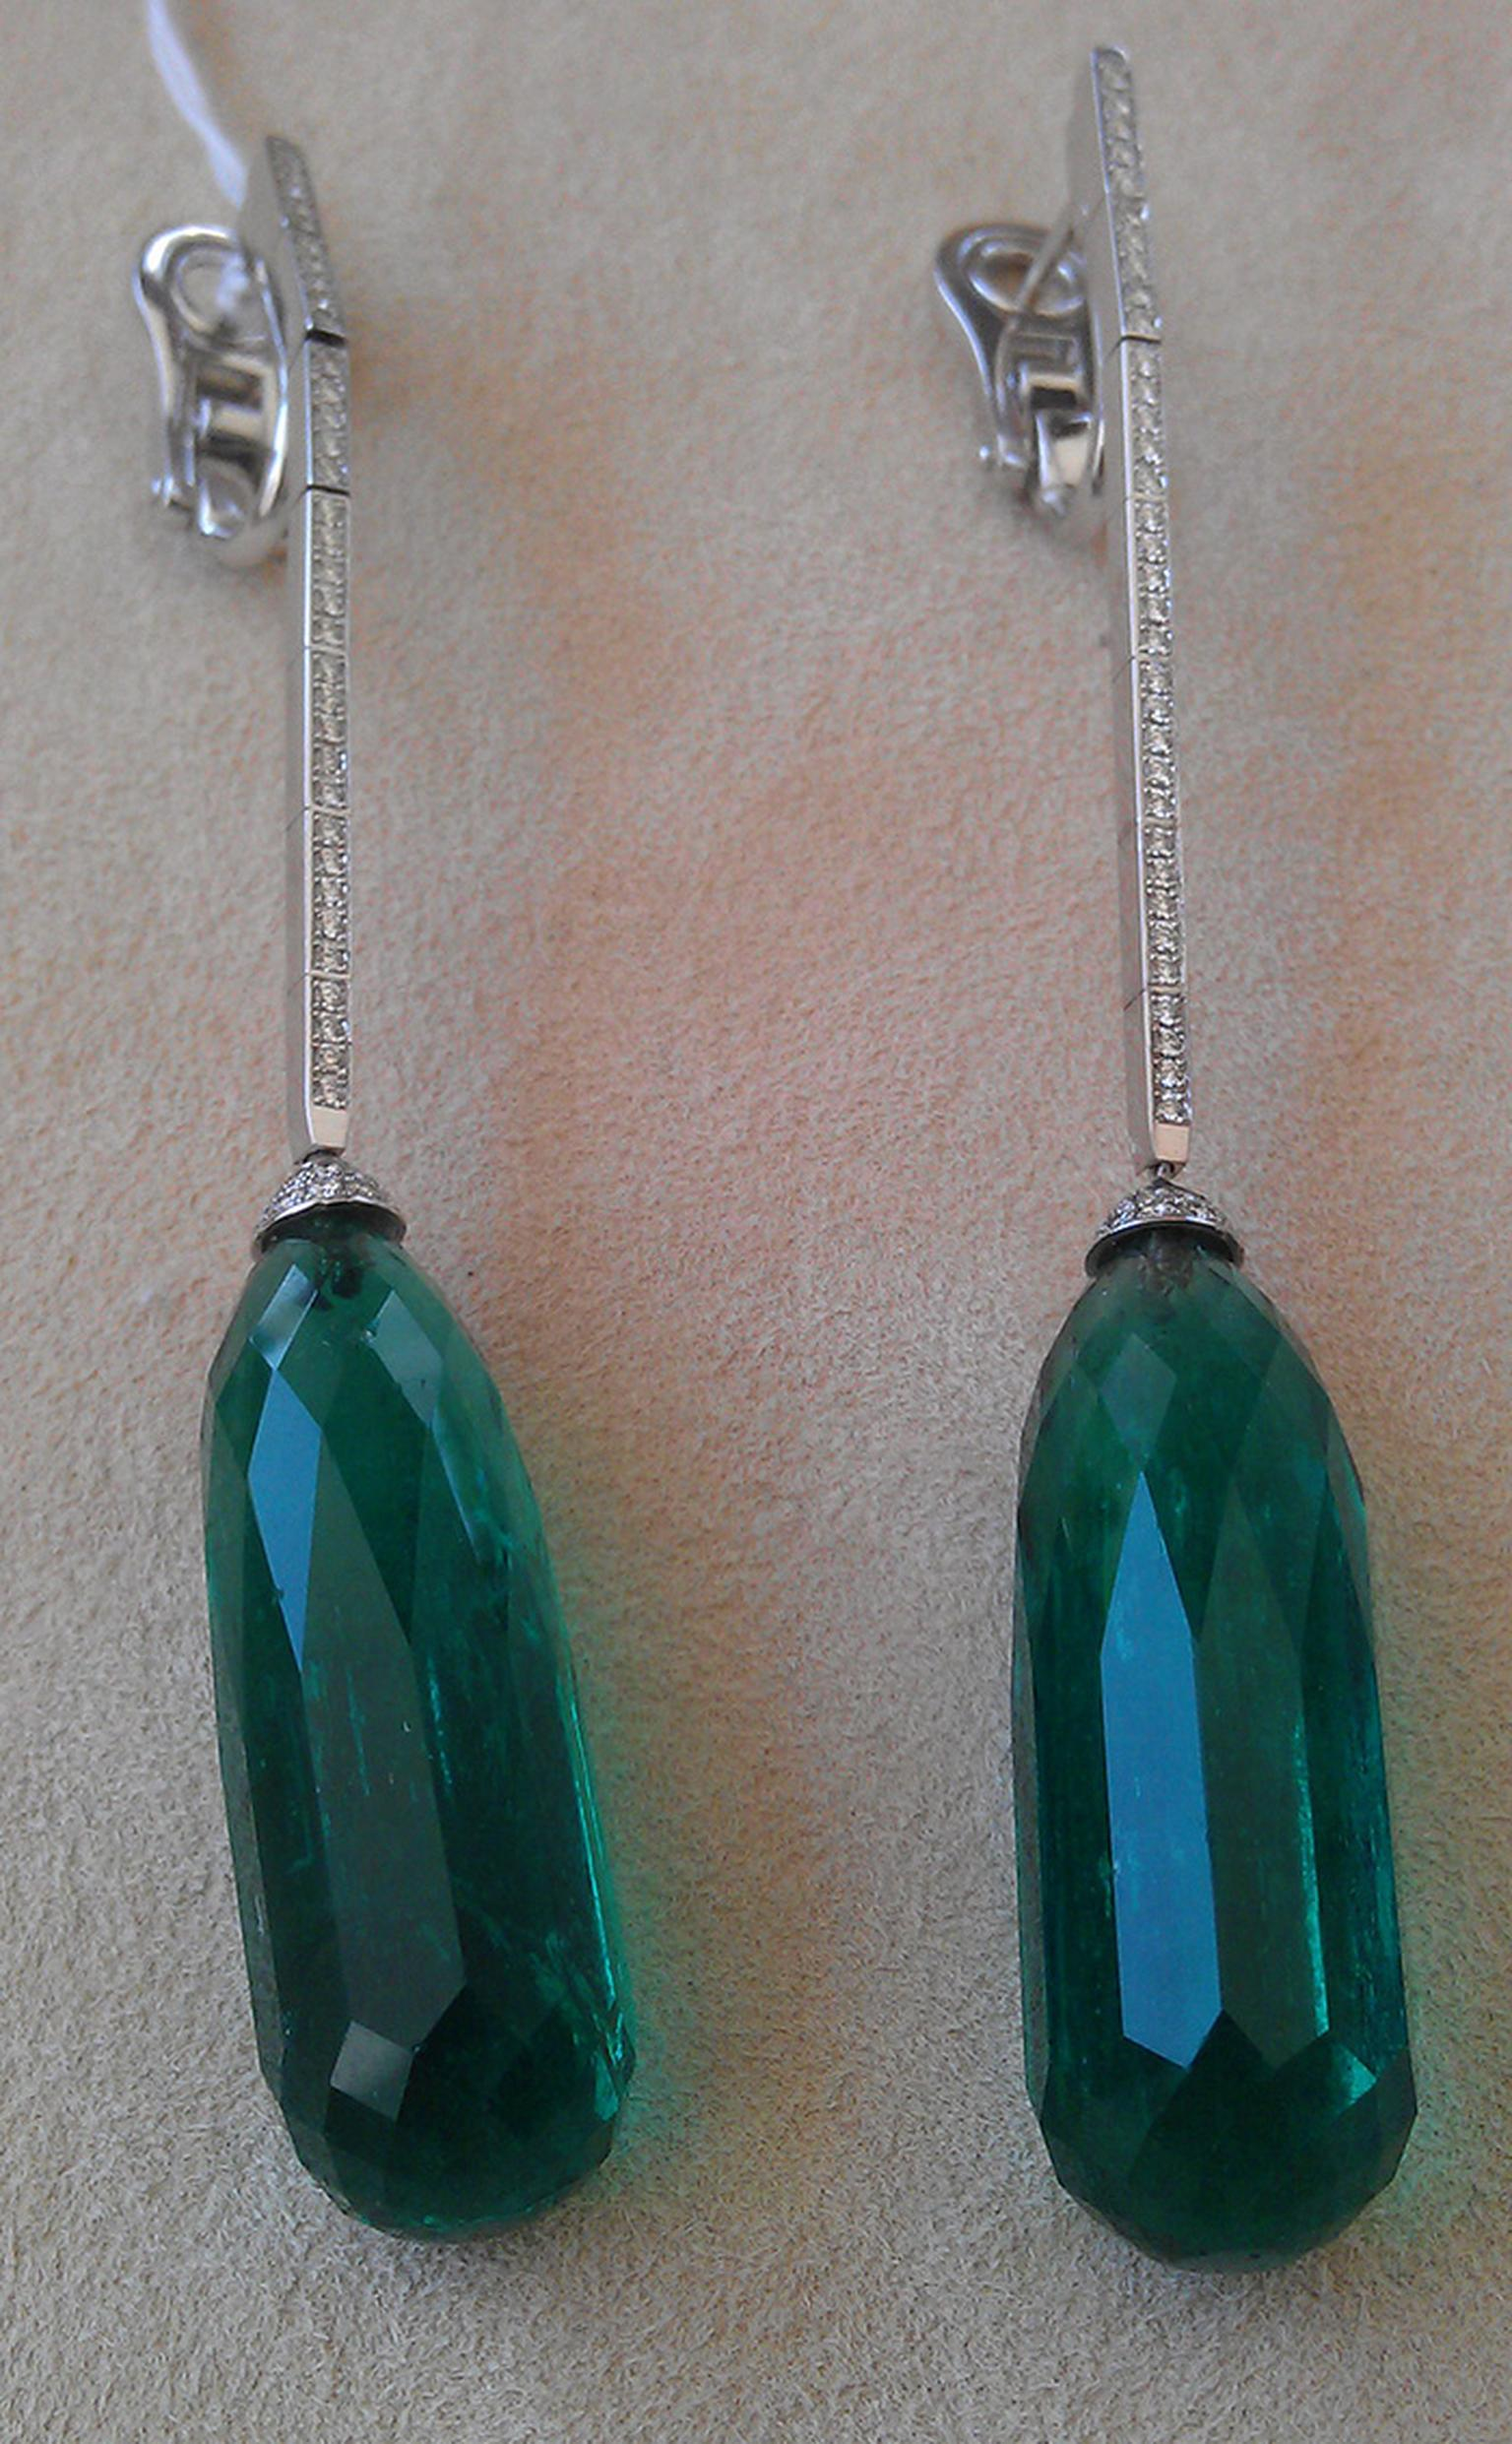 Chopard-Emerald-earrings-as-worn-by-Jane-Fonda